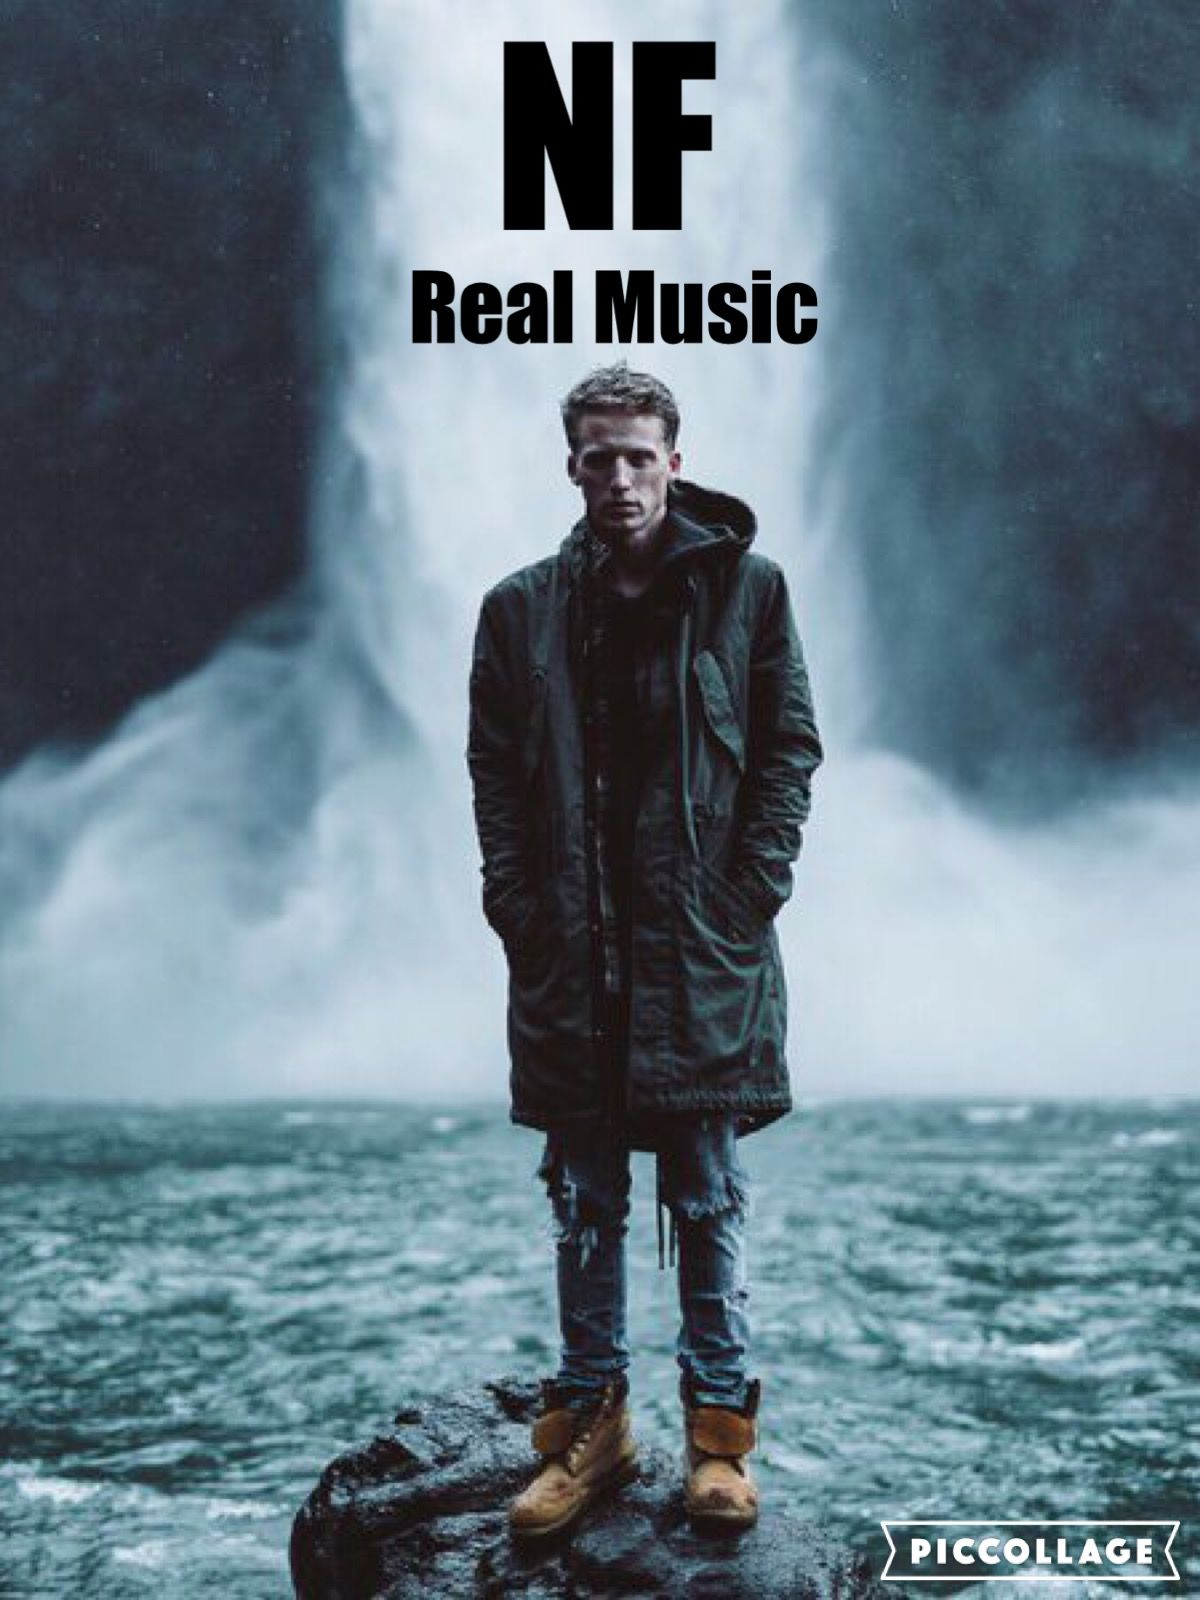 Pin by Amiliah Alley on NF Real Music Pinterest Nf